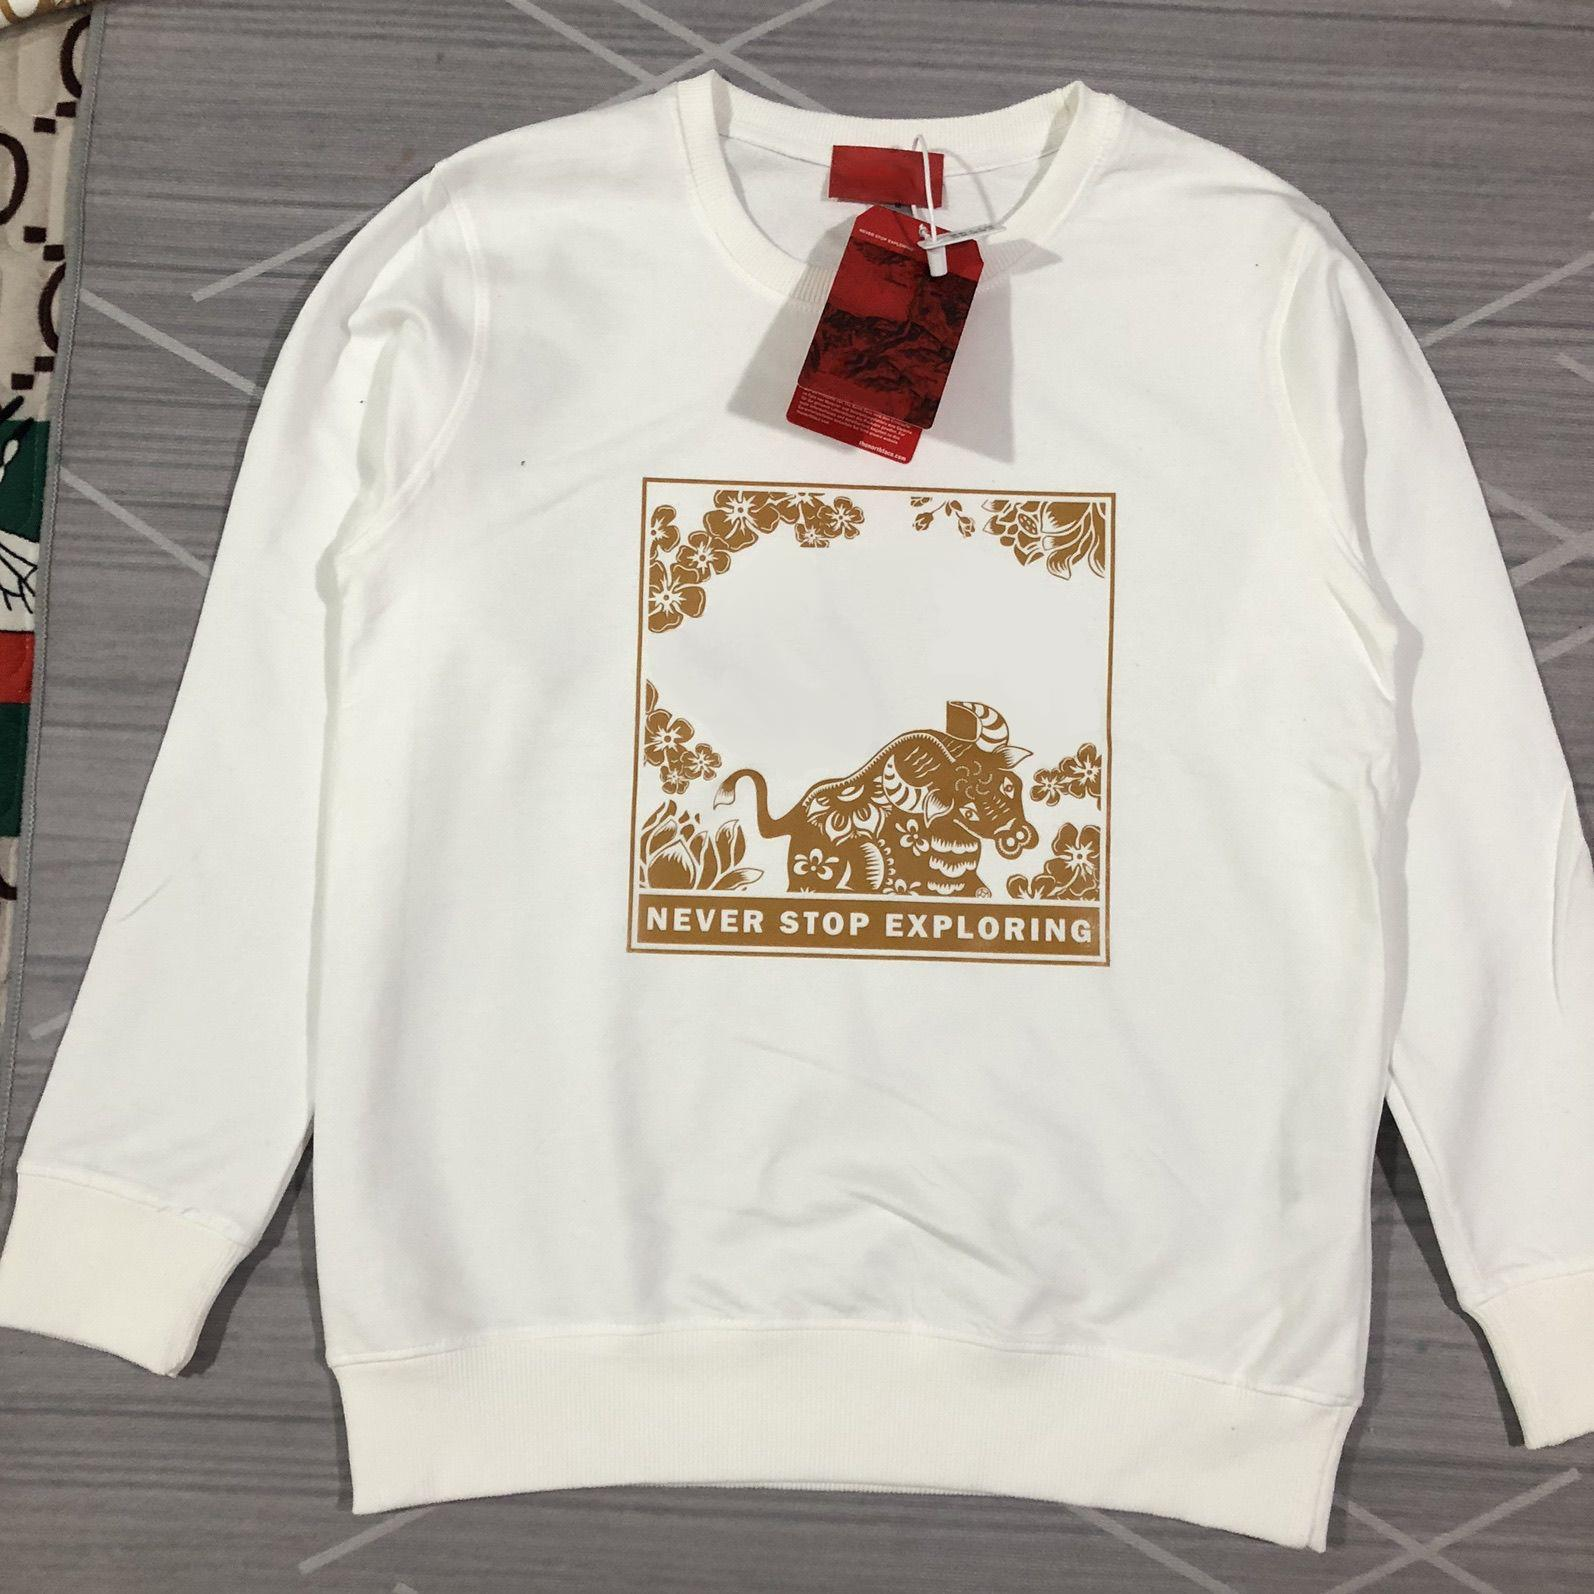 21FW Mes Sweatshirt 2021 Year of The Ox Pattern Pullovers Fashion Letters Printing Tops Unisex Boys Hiphop Sweatshirts Asian Size M-5XL